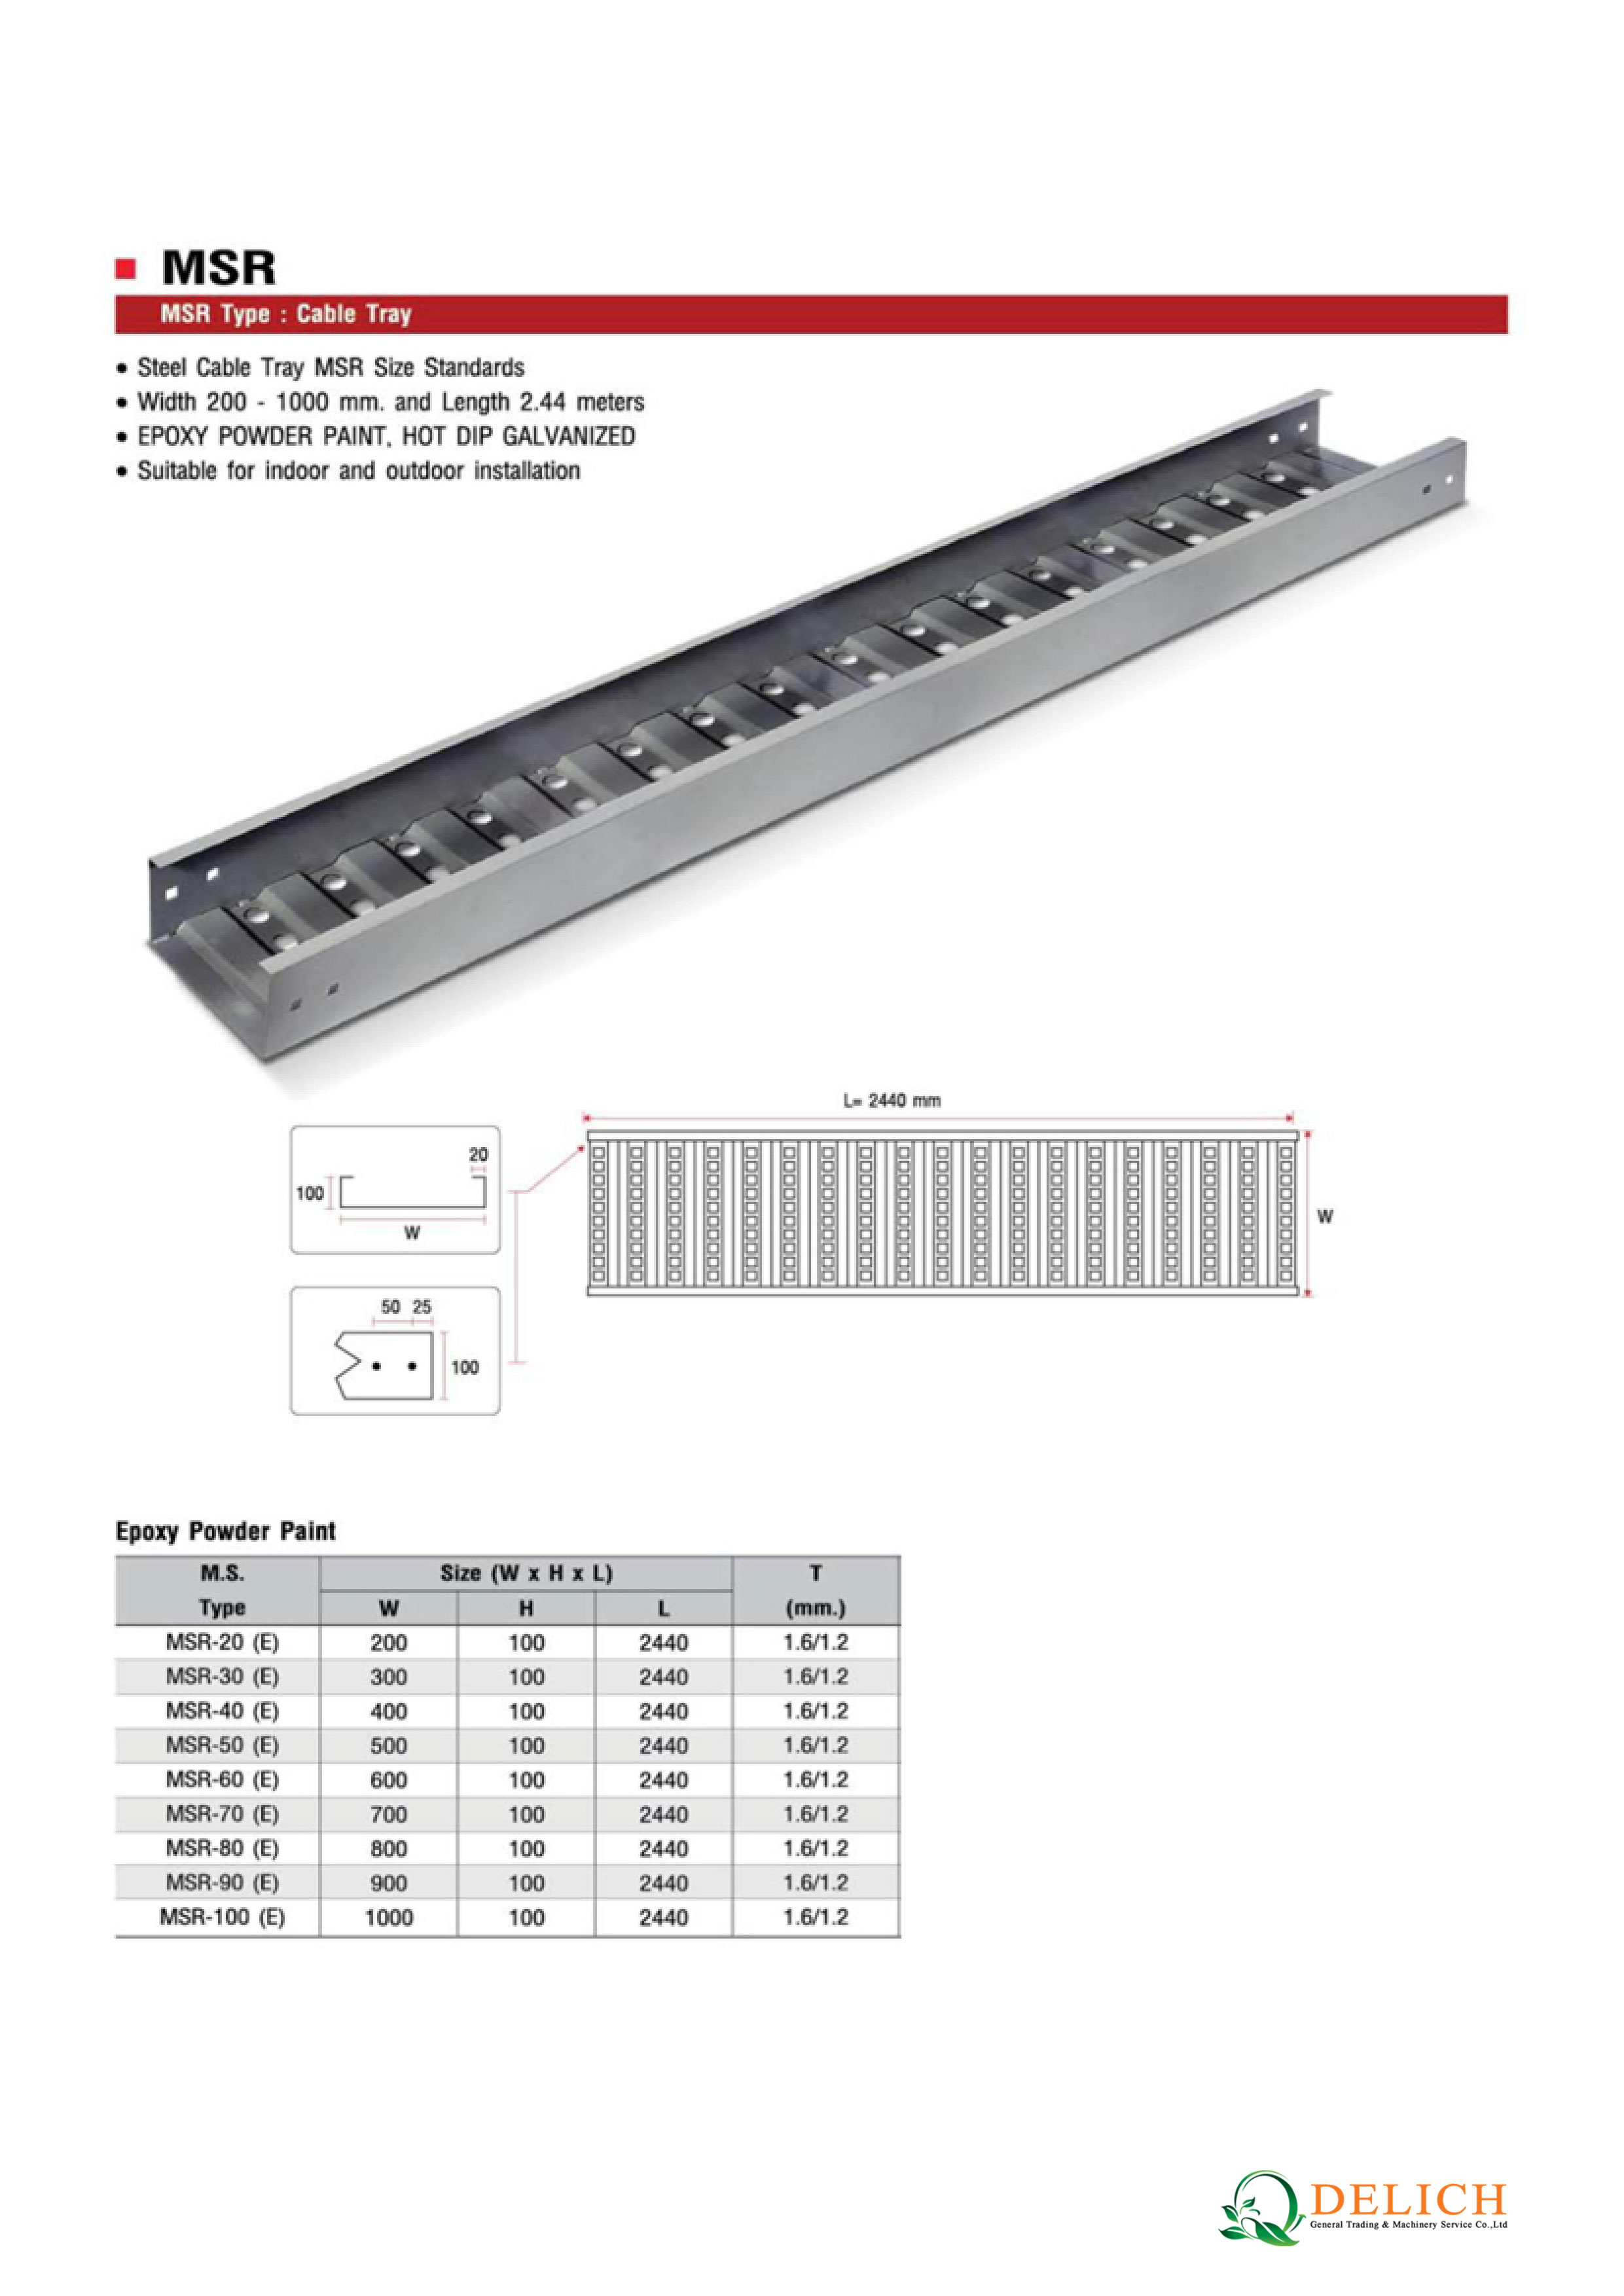 Cable Tray Delich